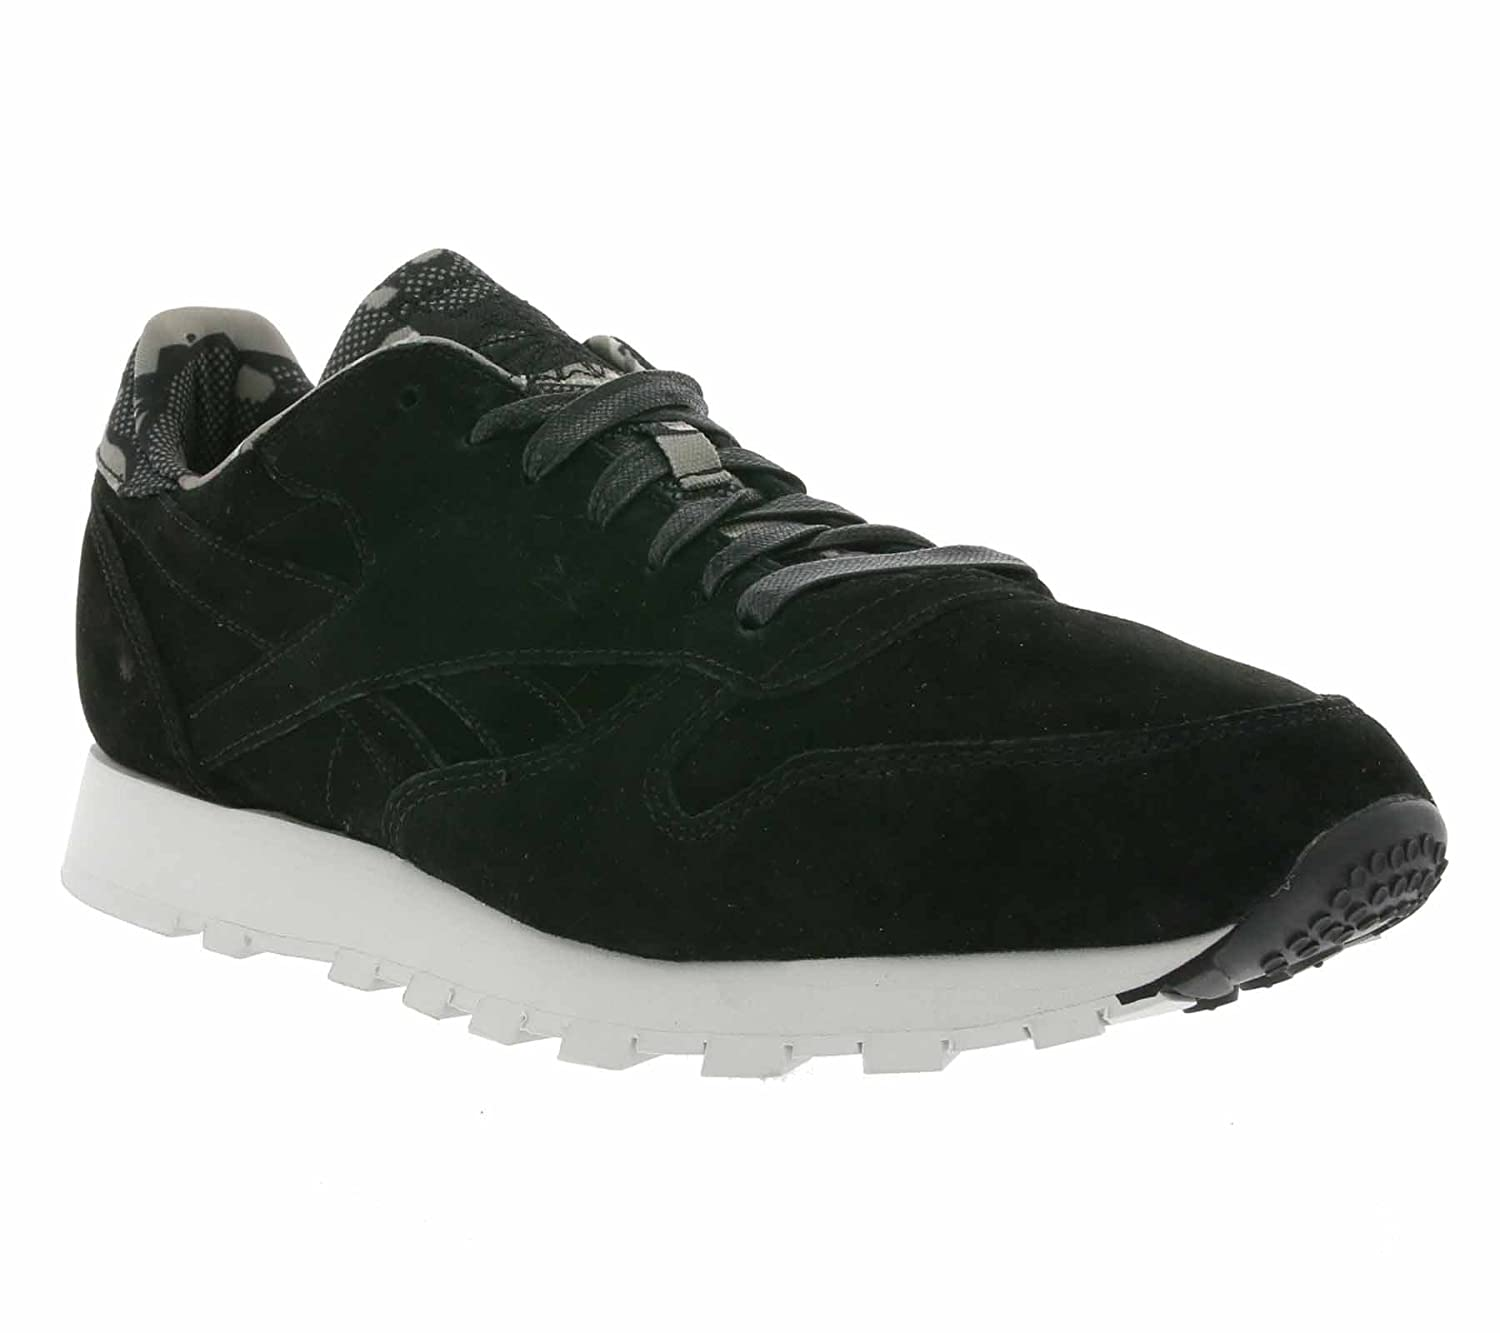 392caf778d5 Reebok Classic Leather CL TDC Mens Trainers Black AR1433  Amazon.co.uk   Shoes   Bags